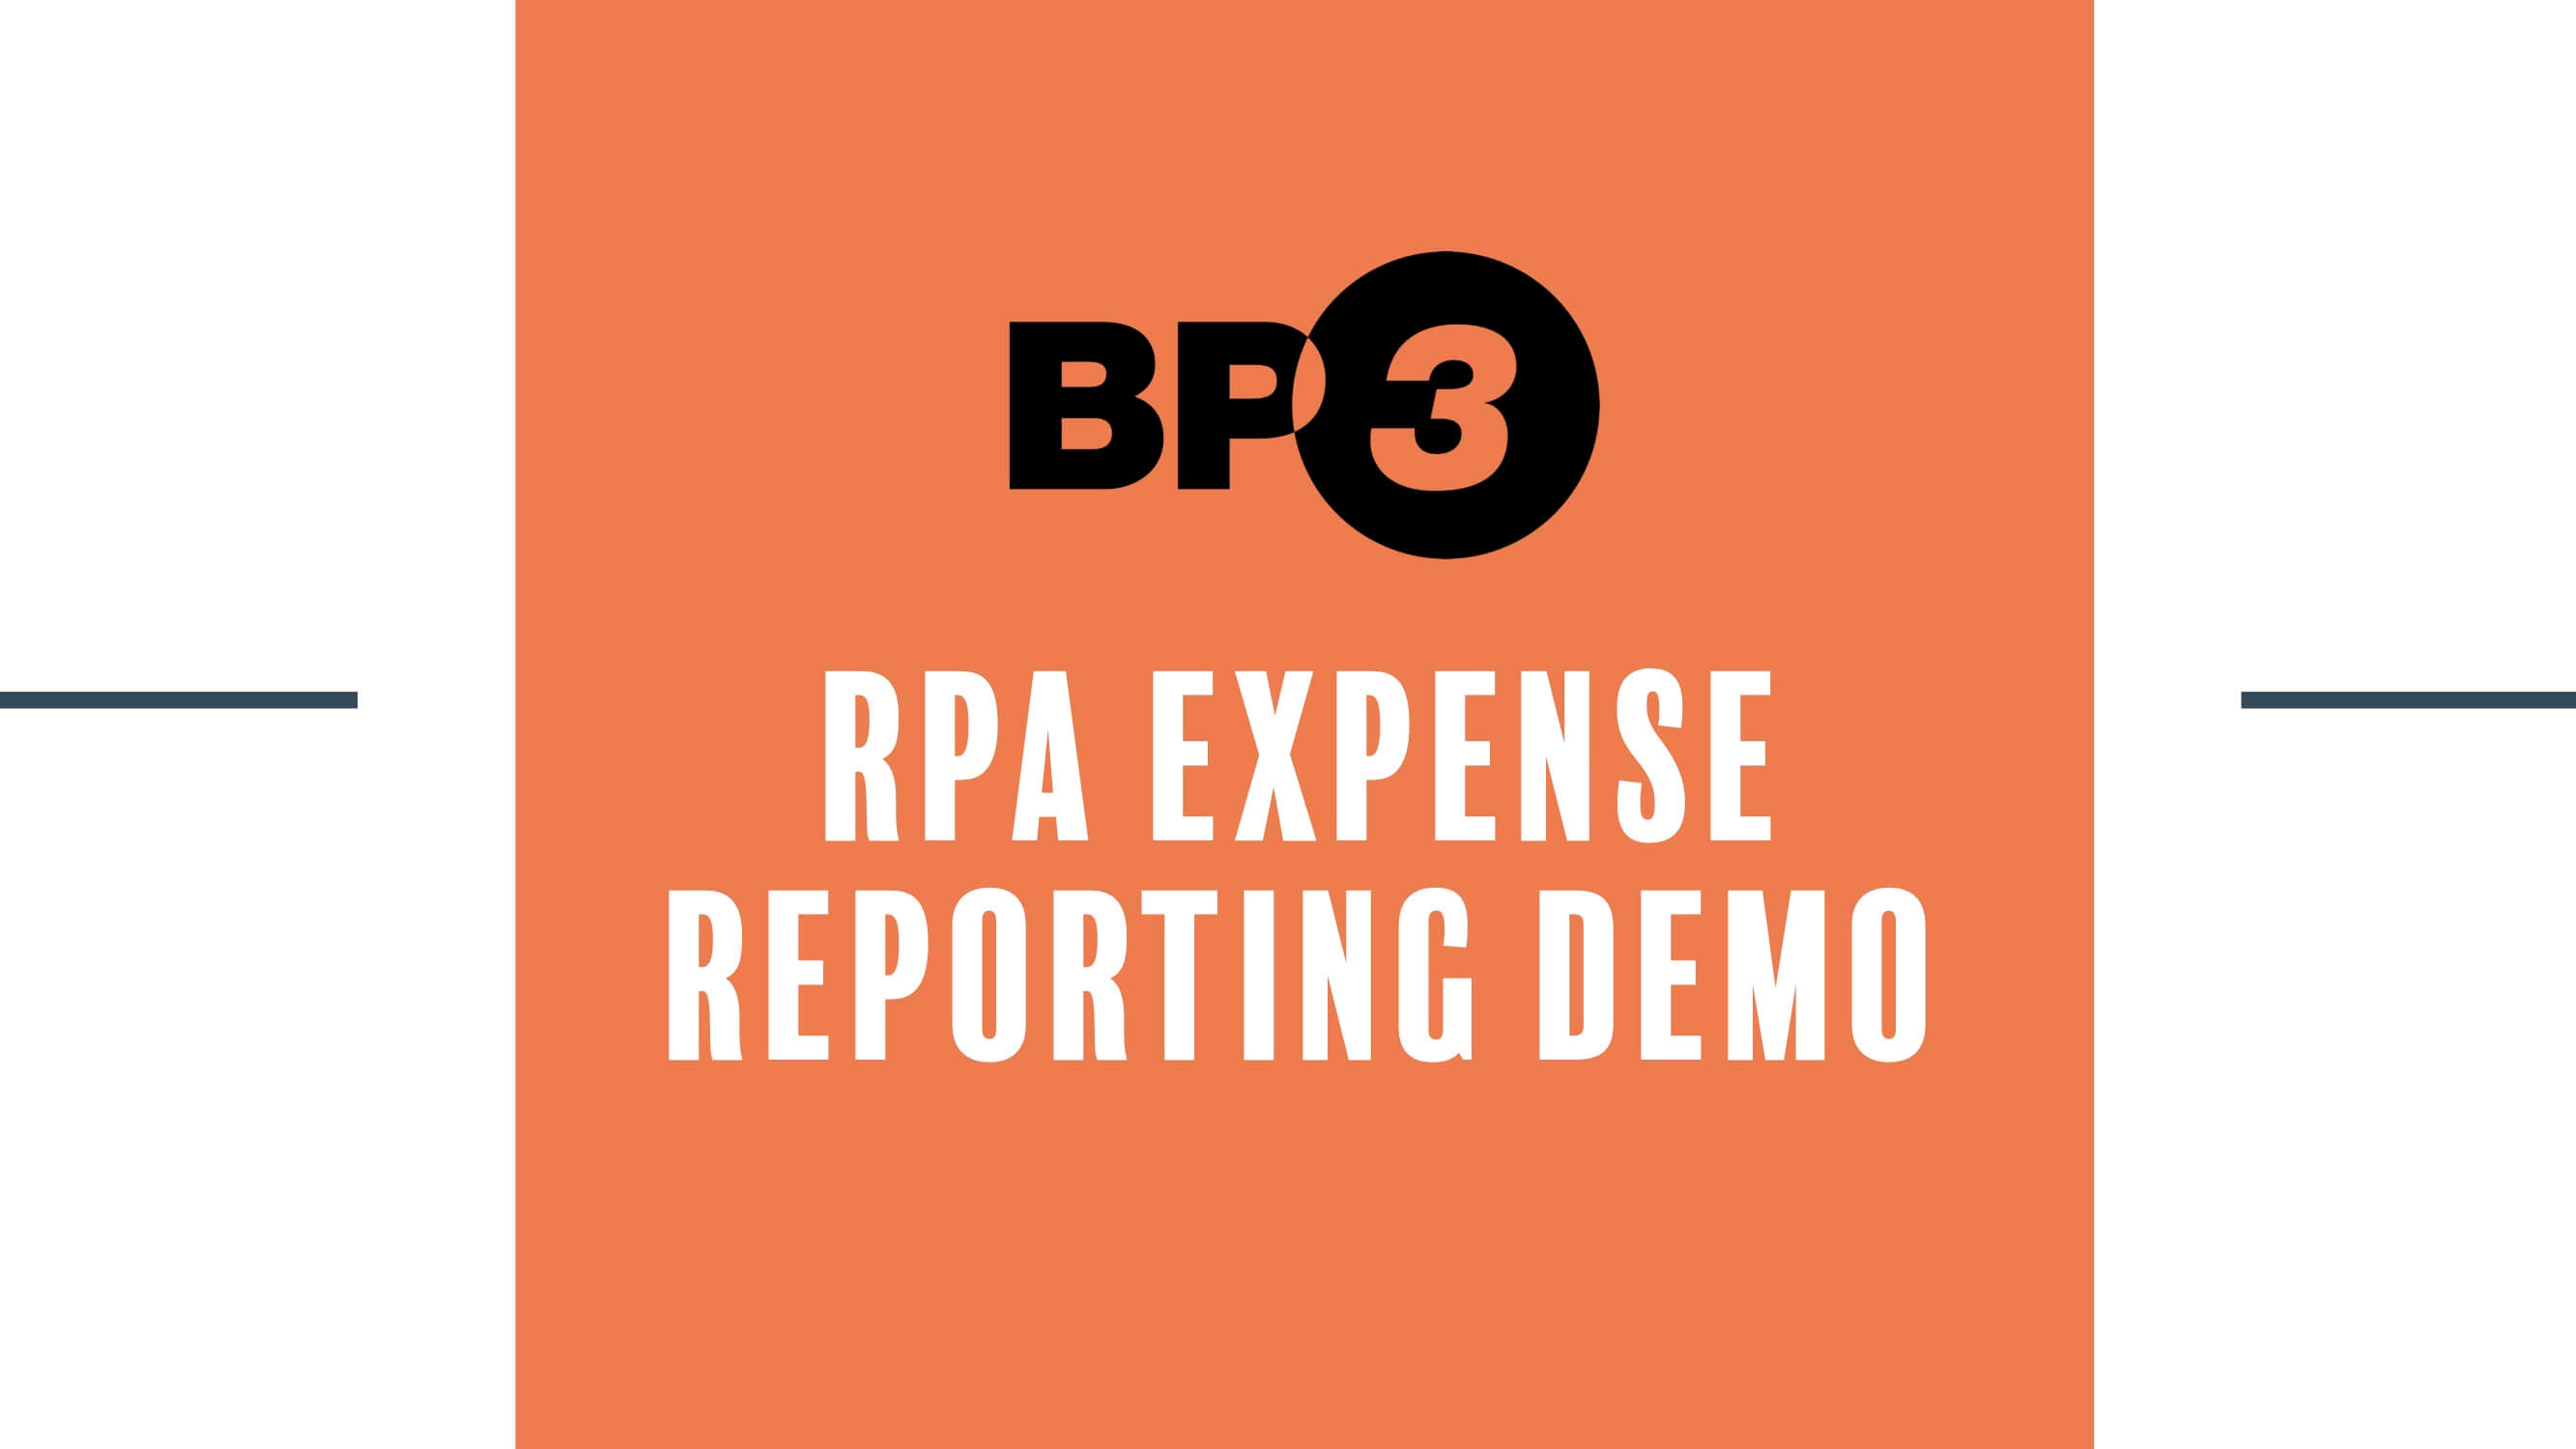 RPA Expense Reporting Demo